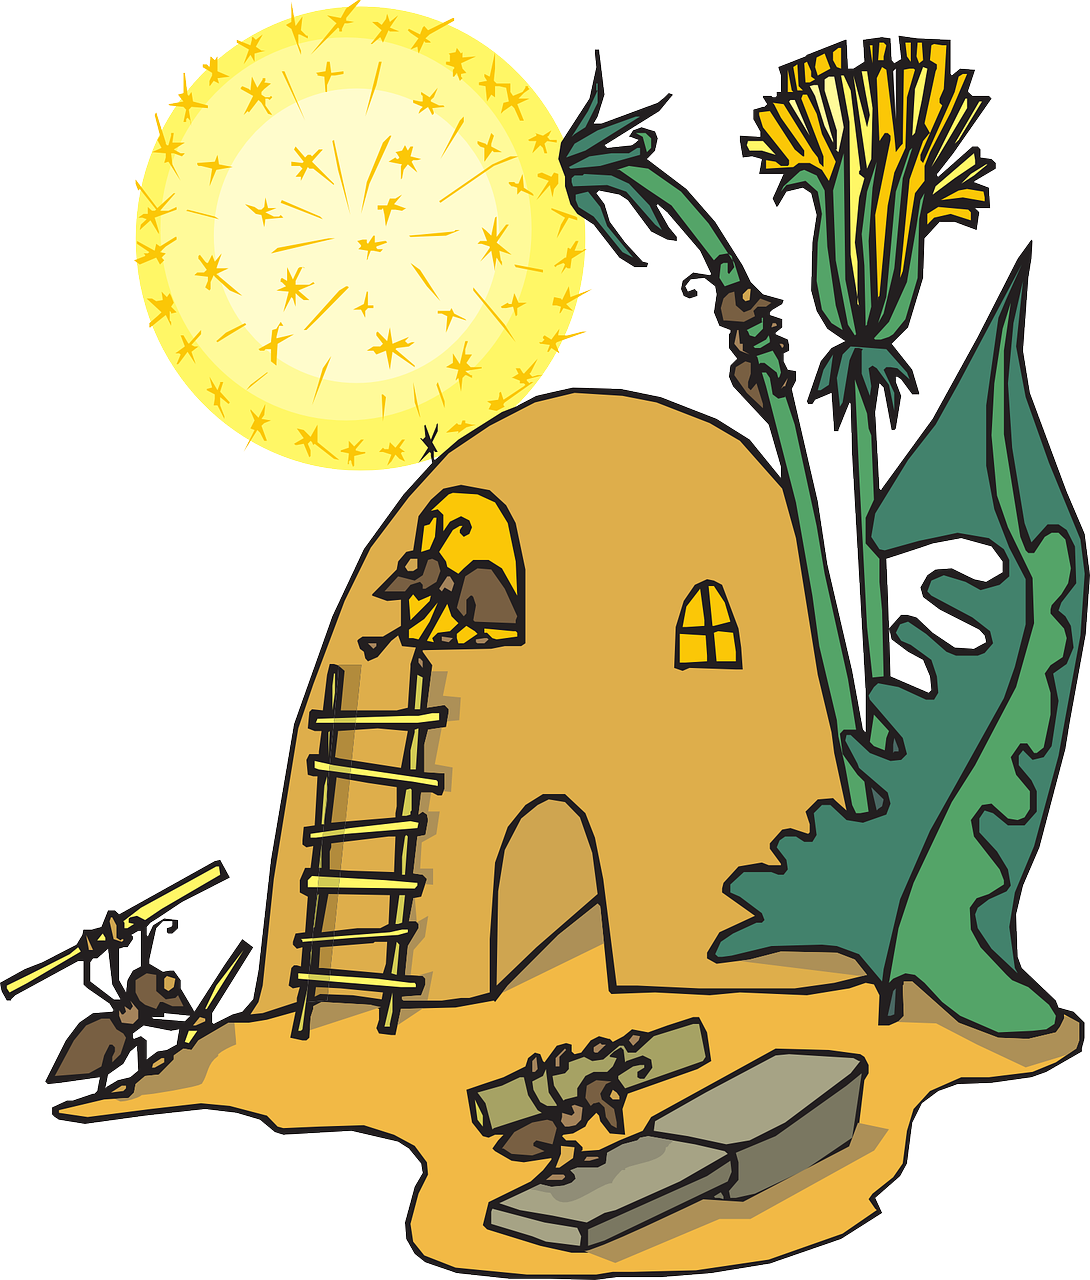 Ants clipart worker ant. Facts for kids cool